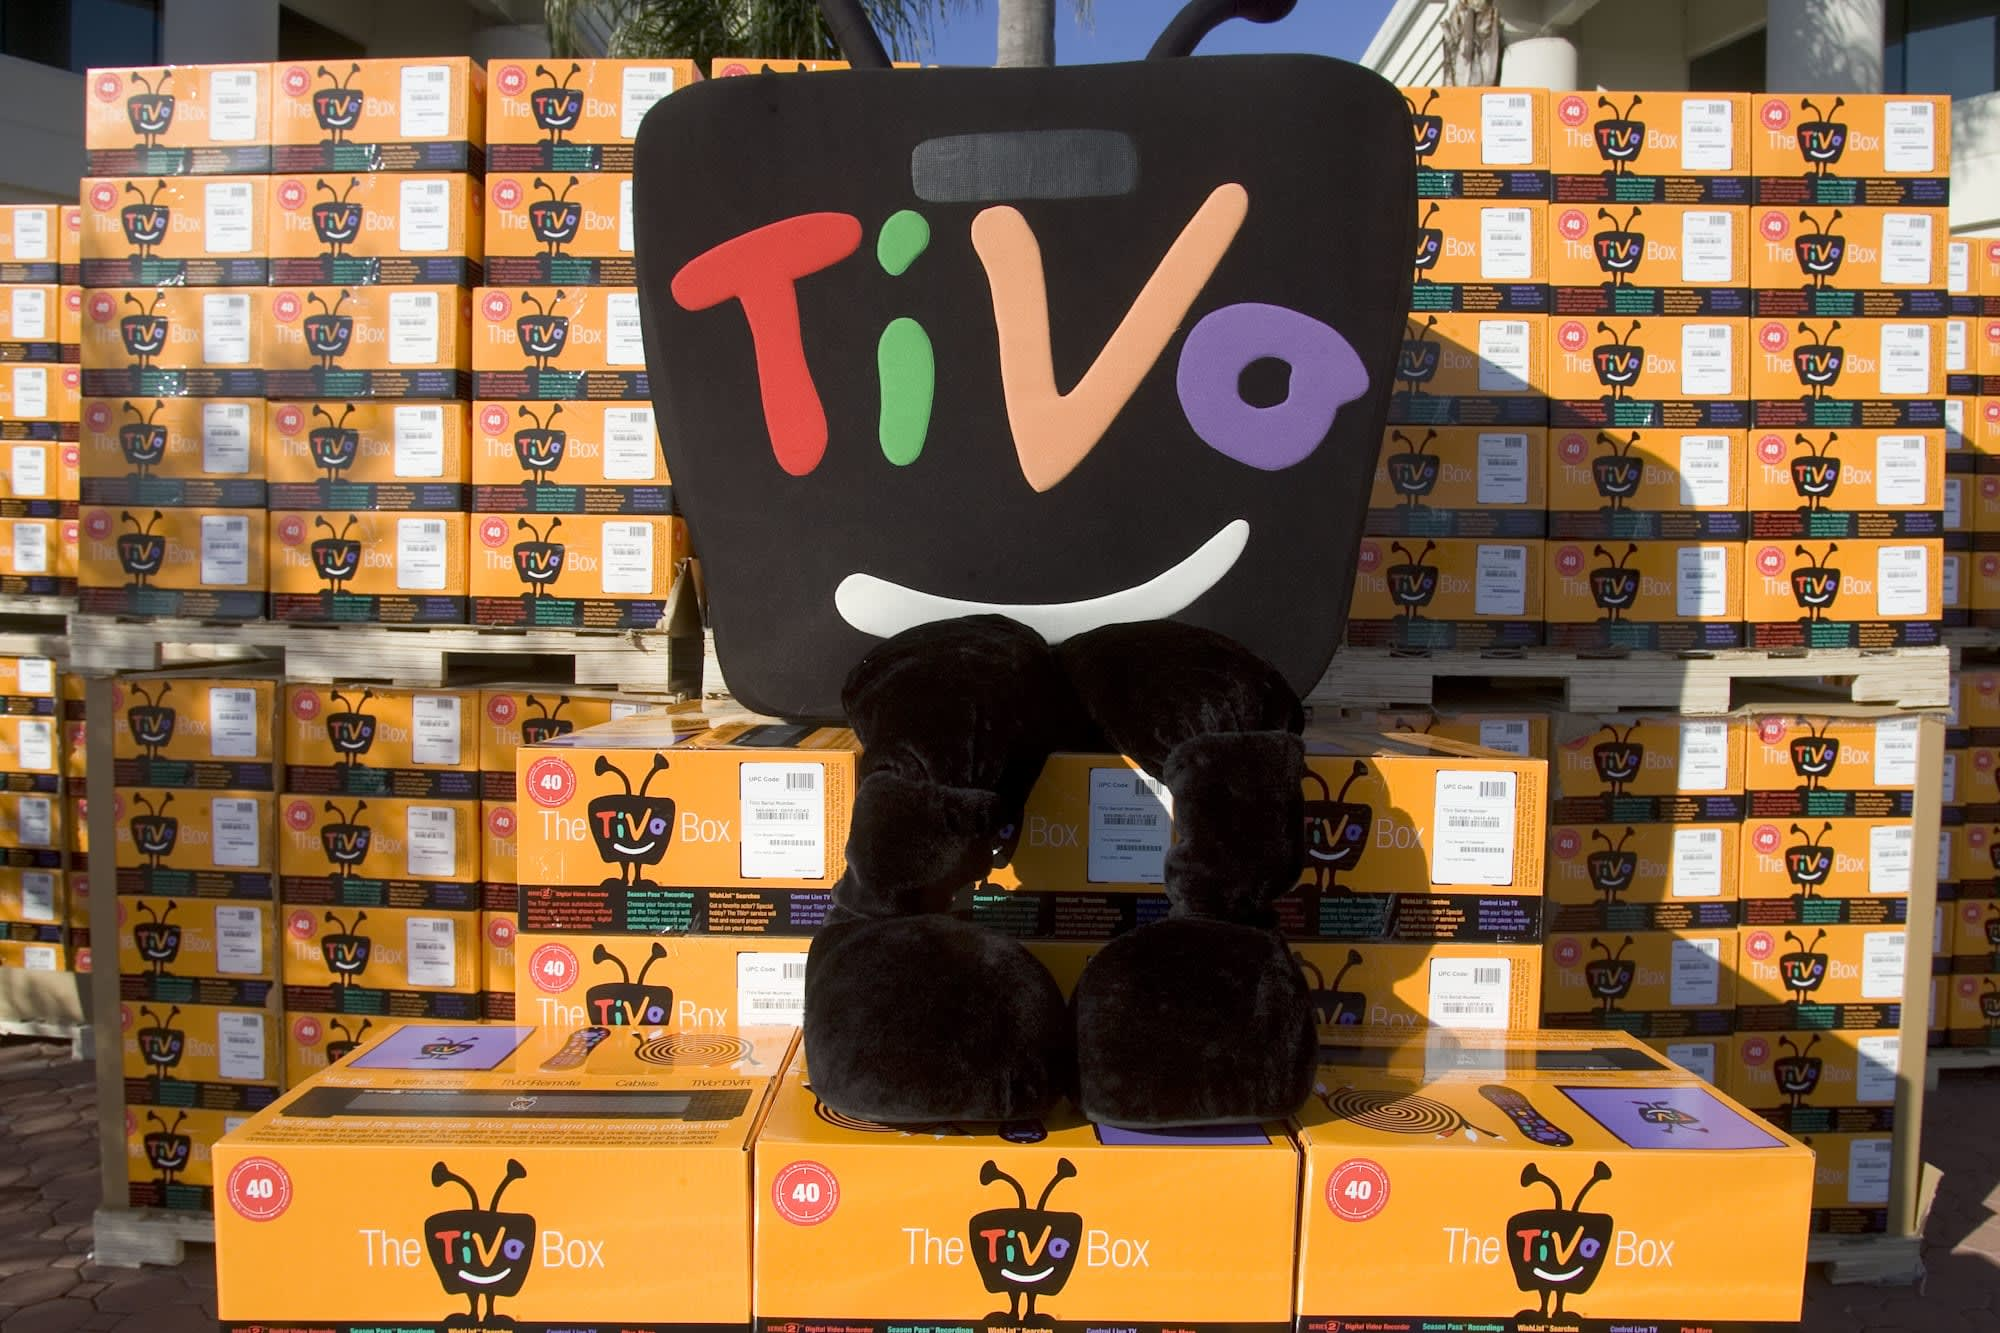 TiVo plans to split its product and licensing divisions